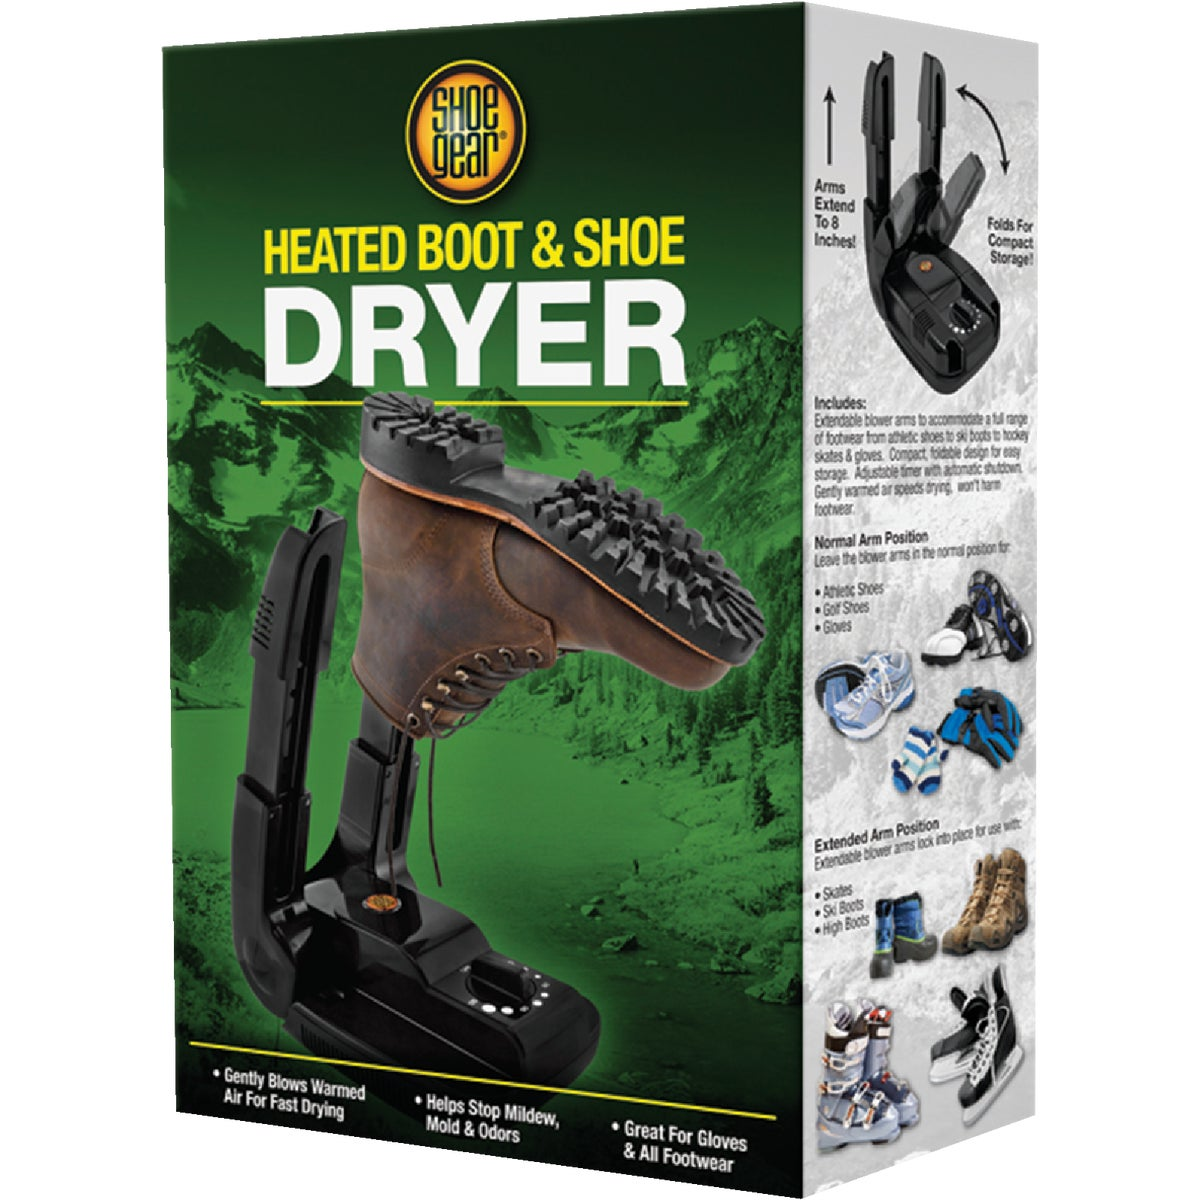 HEATED BOOT DRYER